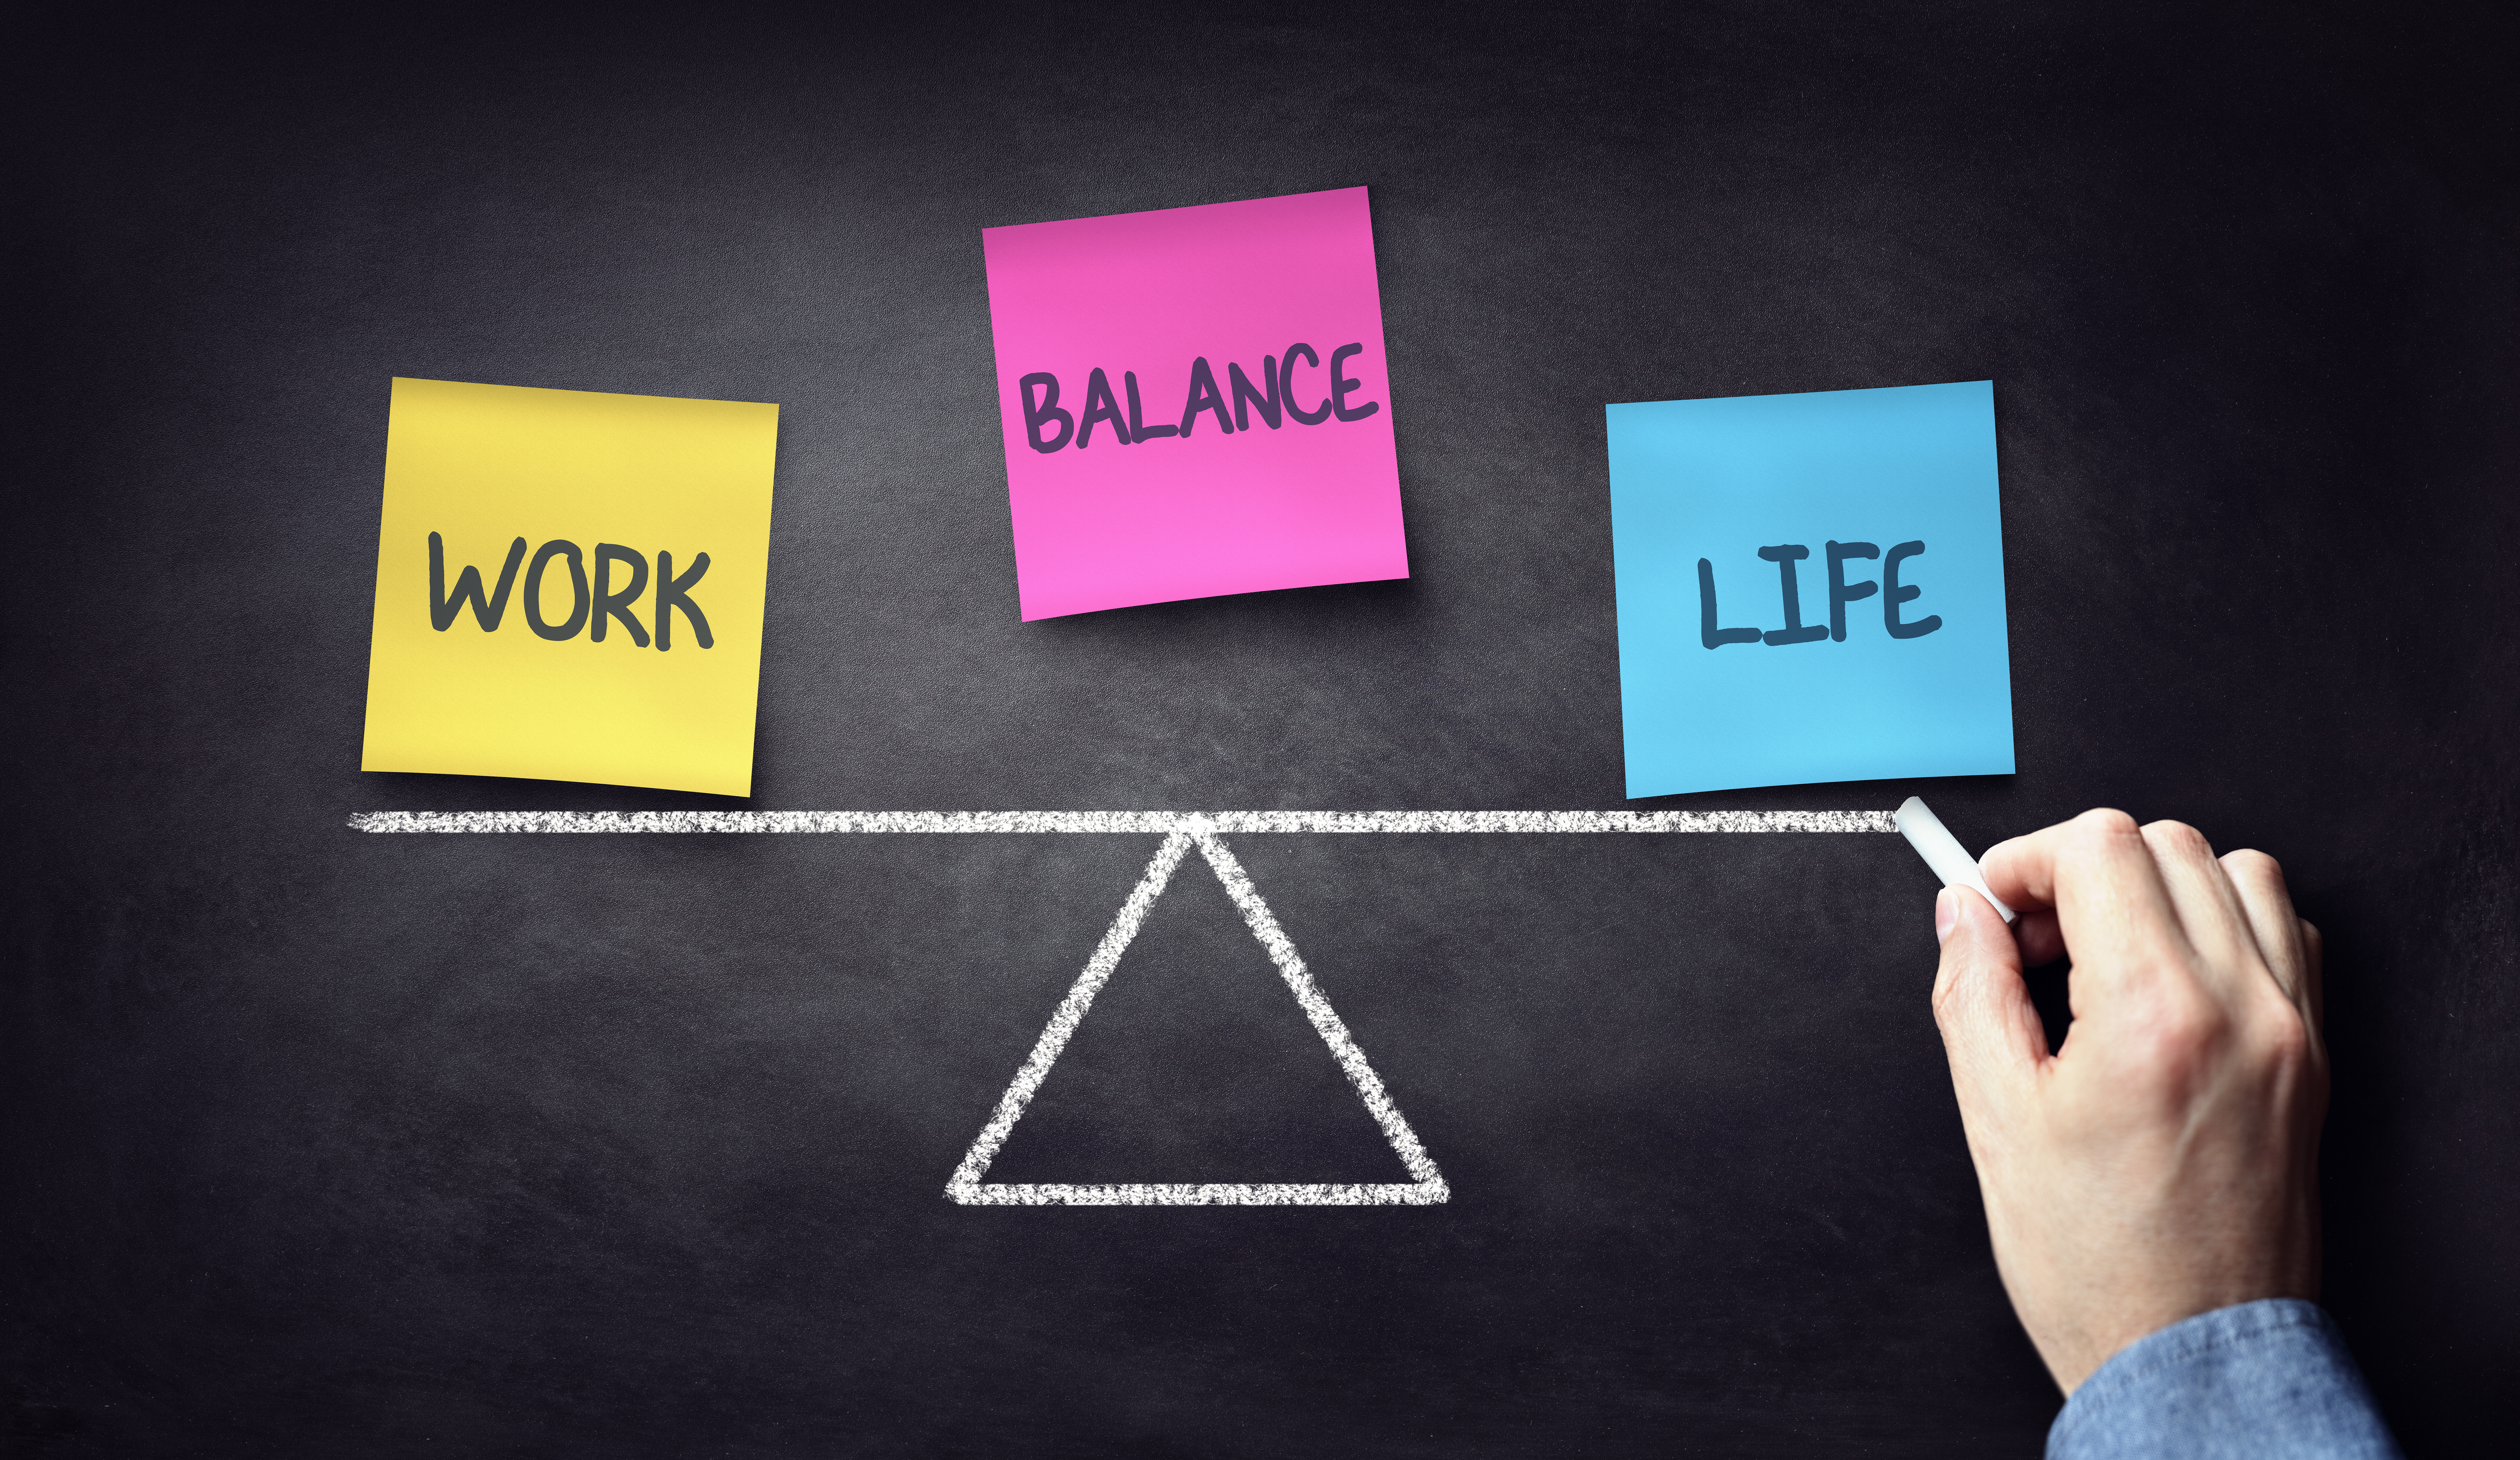 Shift work is about managing supply and demand in the labour market but also about staff wellbeing